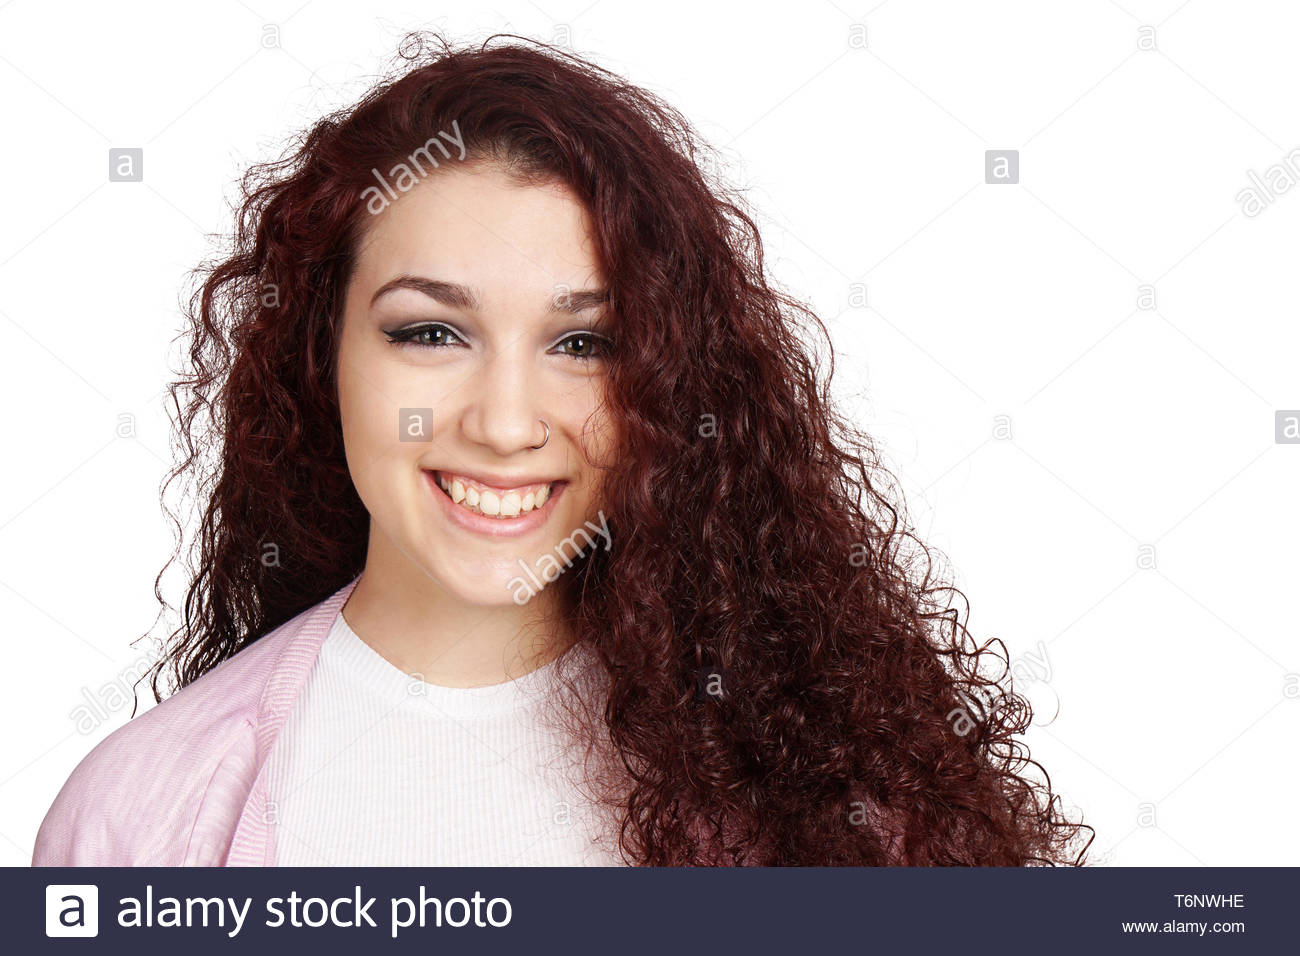 happy teenage girl with long curly hair and toothy smile - Stock Image